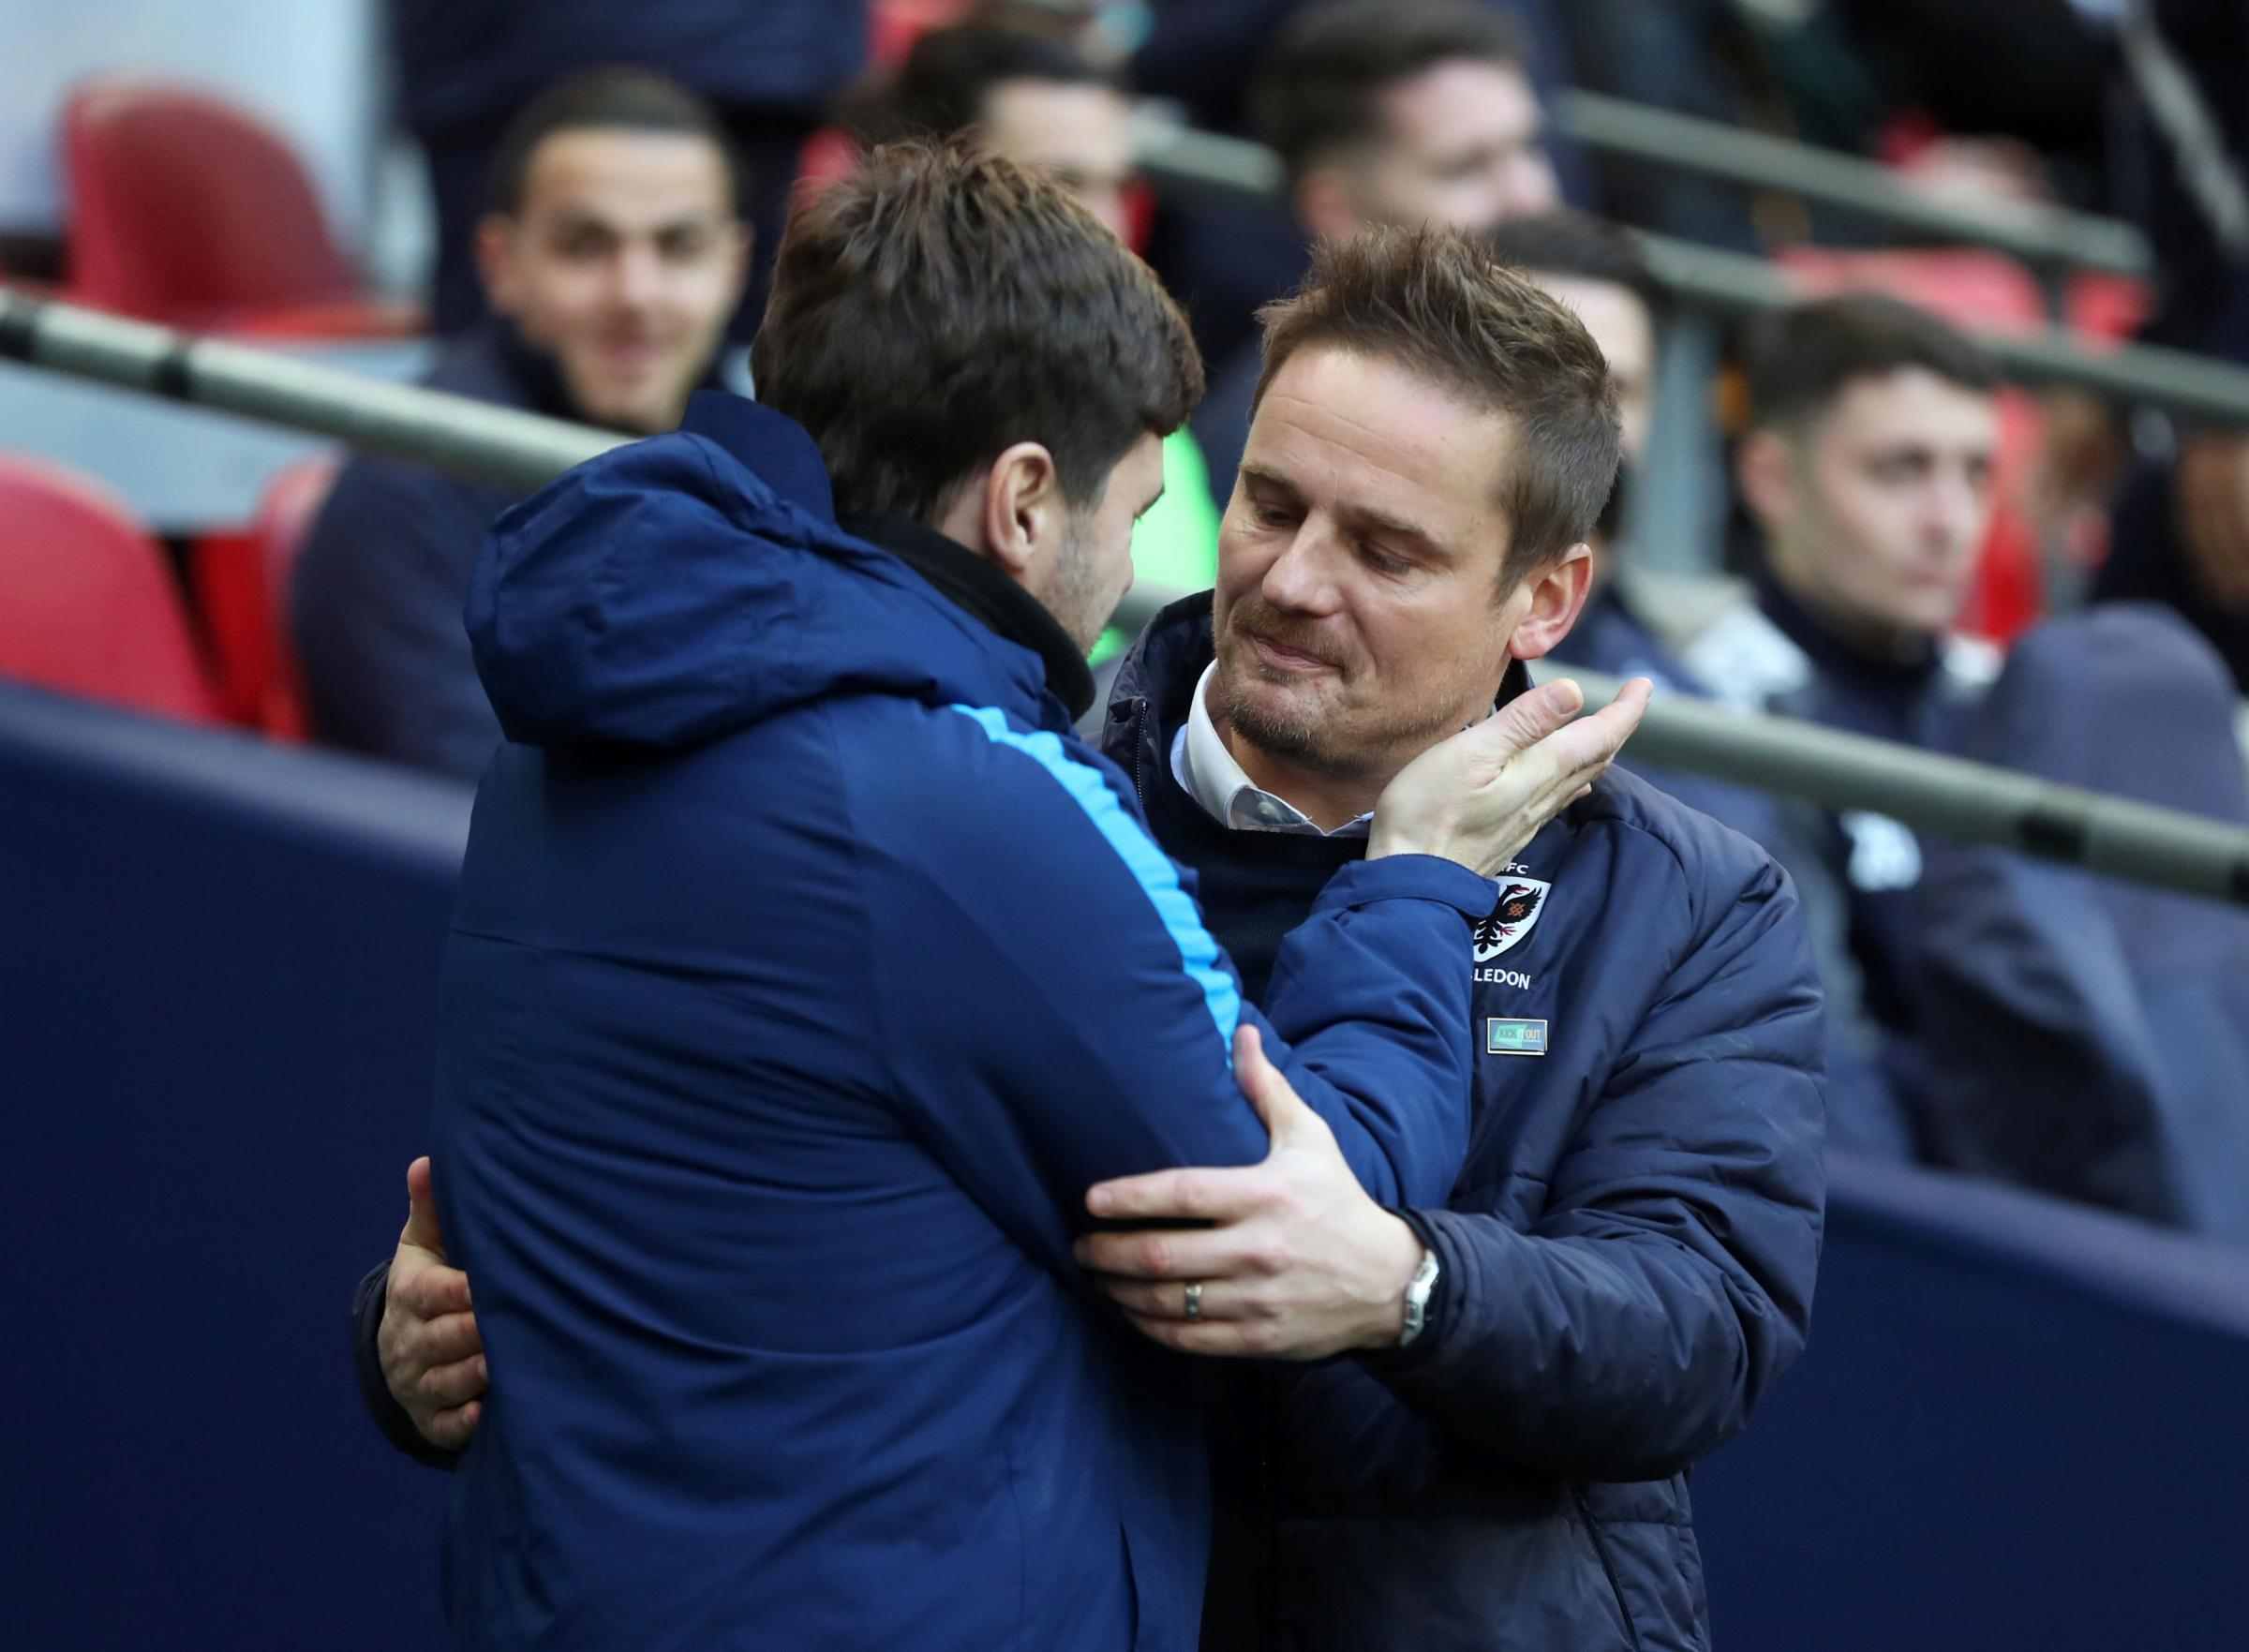 AFC Wimbledon boss Neal Ardley with Tottenham Hotspur manager Mauricio Pochettino. Photo: Adam Davy/PA Wire